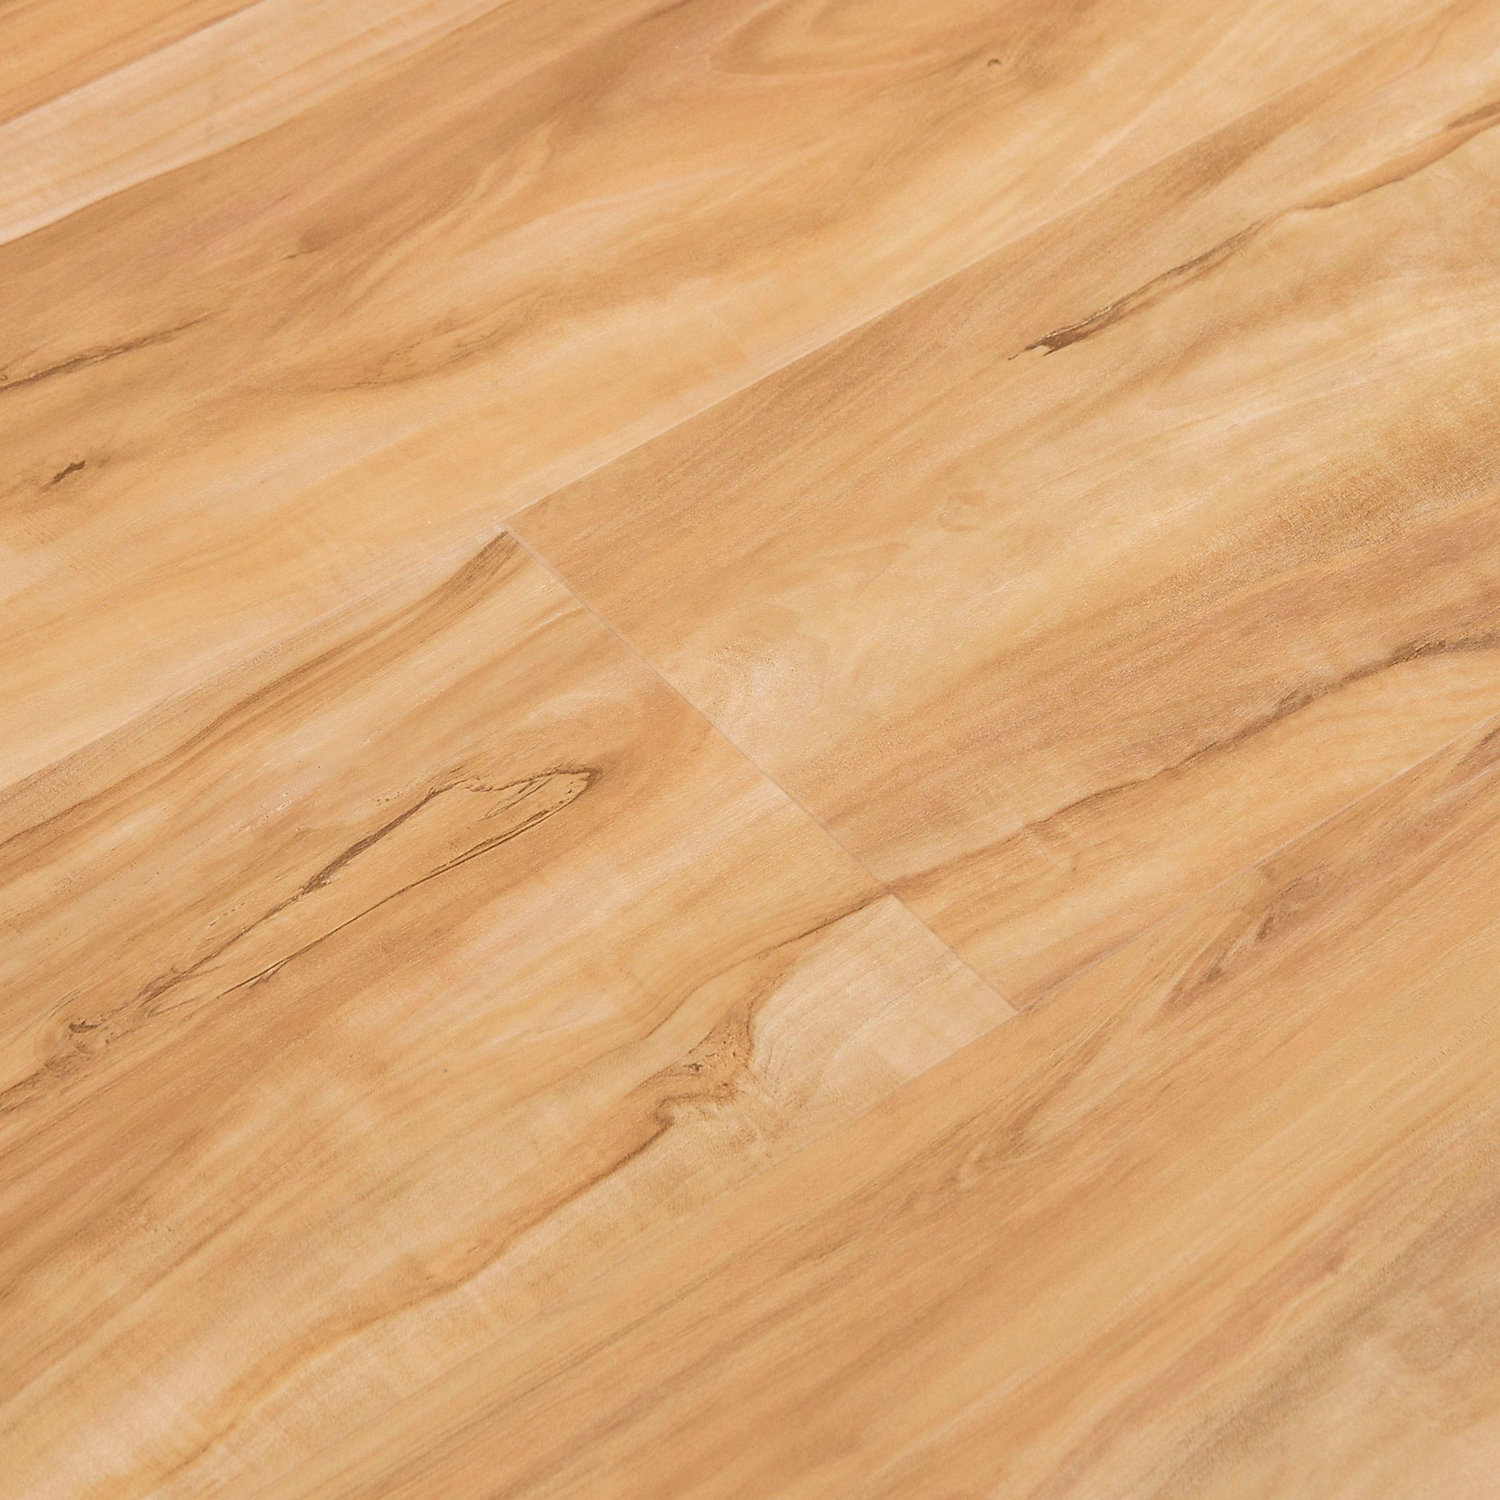 Cali Vinyl Blonde Ale Pro Wide And Click Vinyl Plank Flooring 23 77sq Ft Box 10 Planks 48 Vinyl Plank Flooring Vinyl Plank Luxury Vinyl Plank Flooring